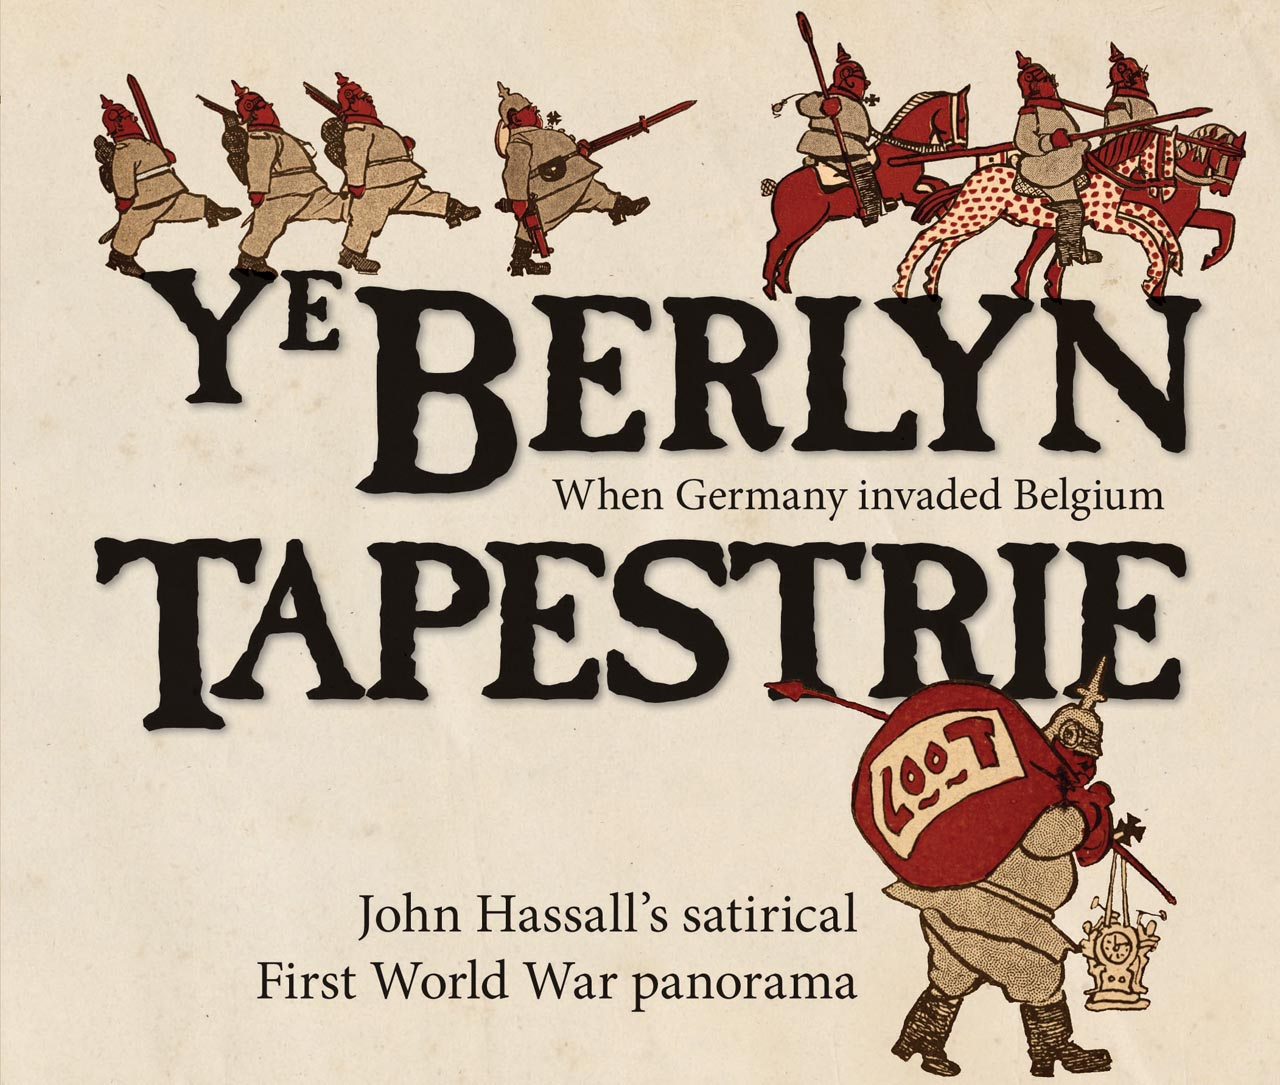 Ye Berlyn Tapestrie: John Hassall's Satirical First World War Panorama